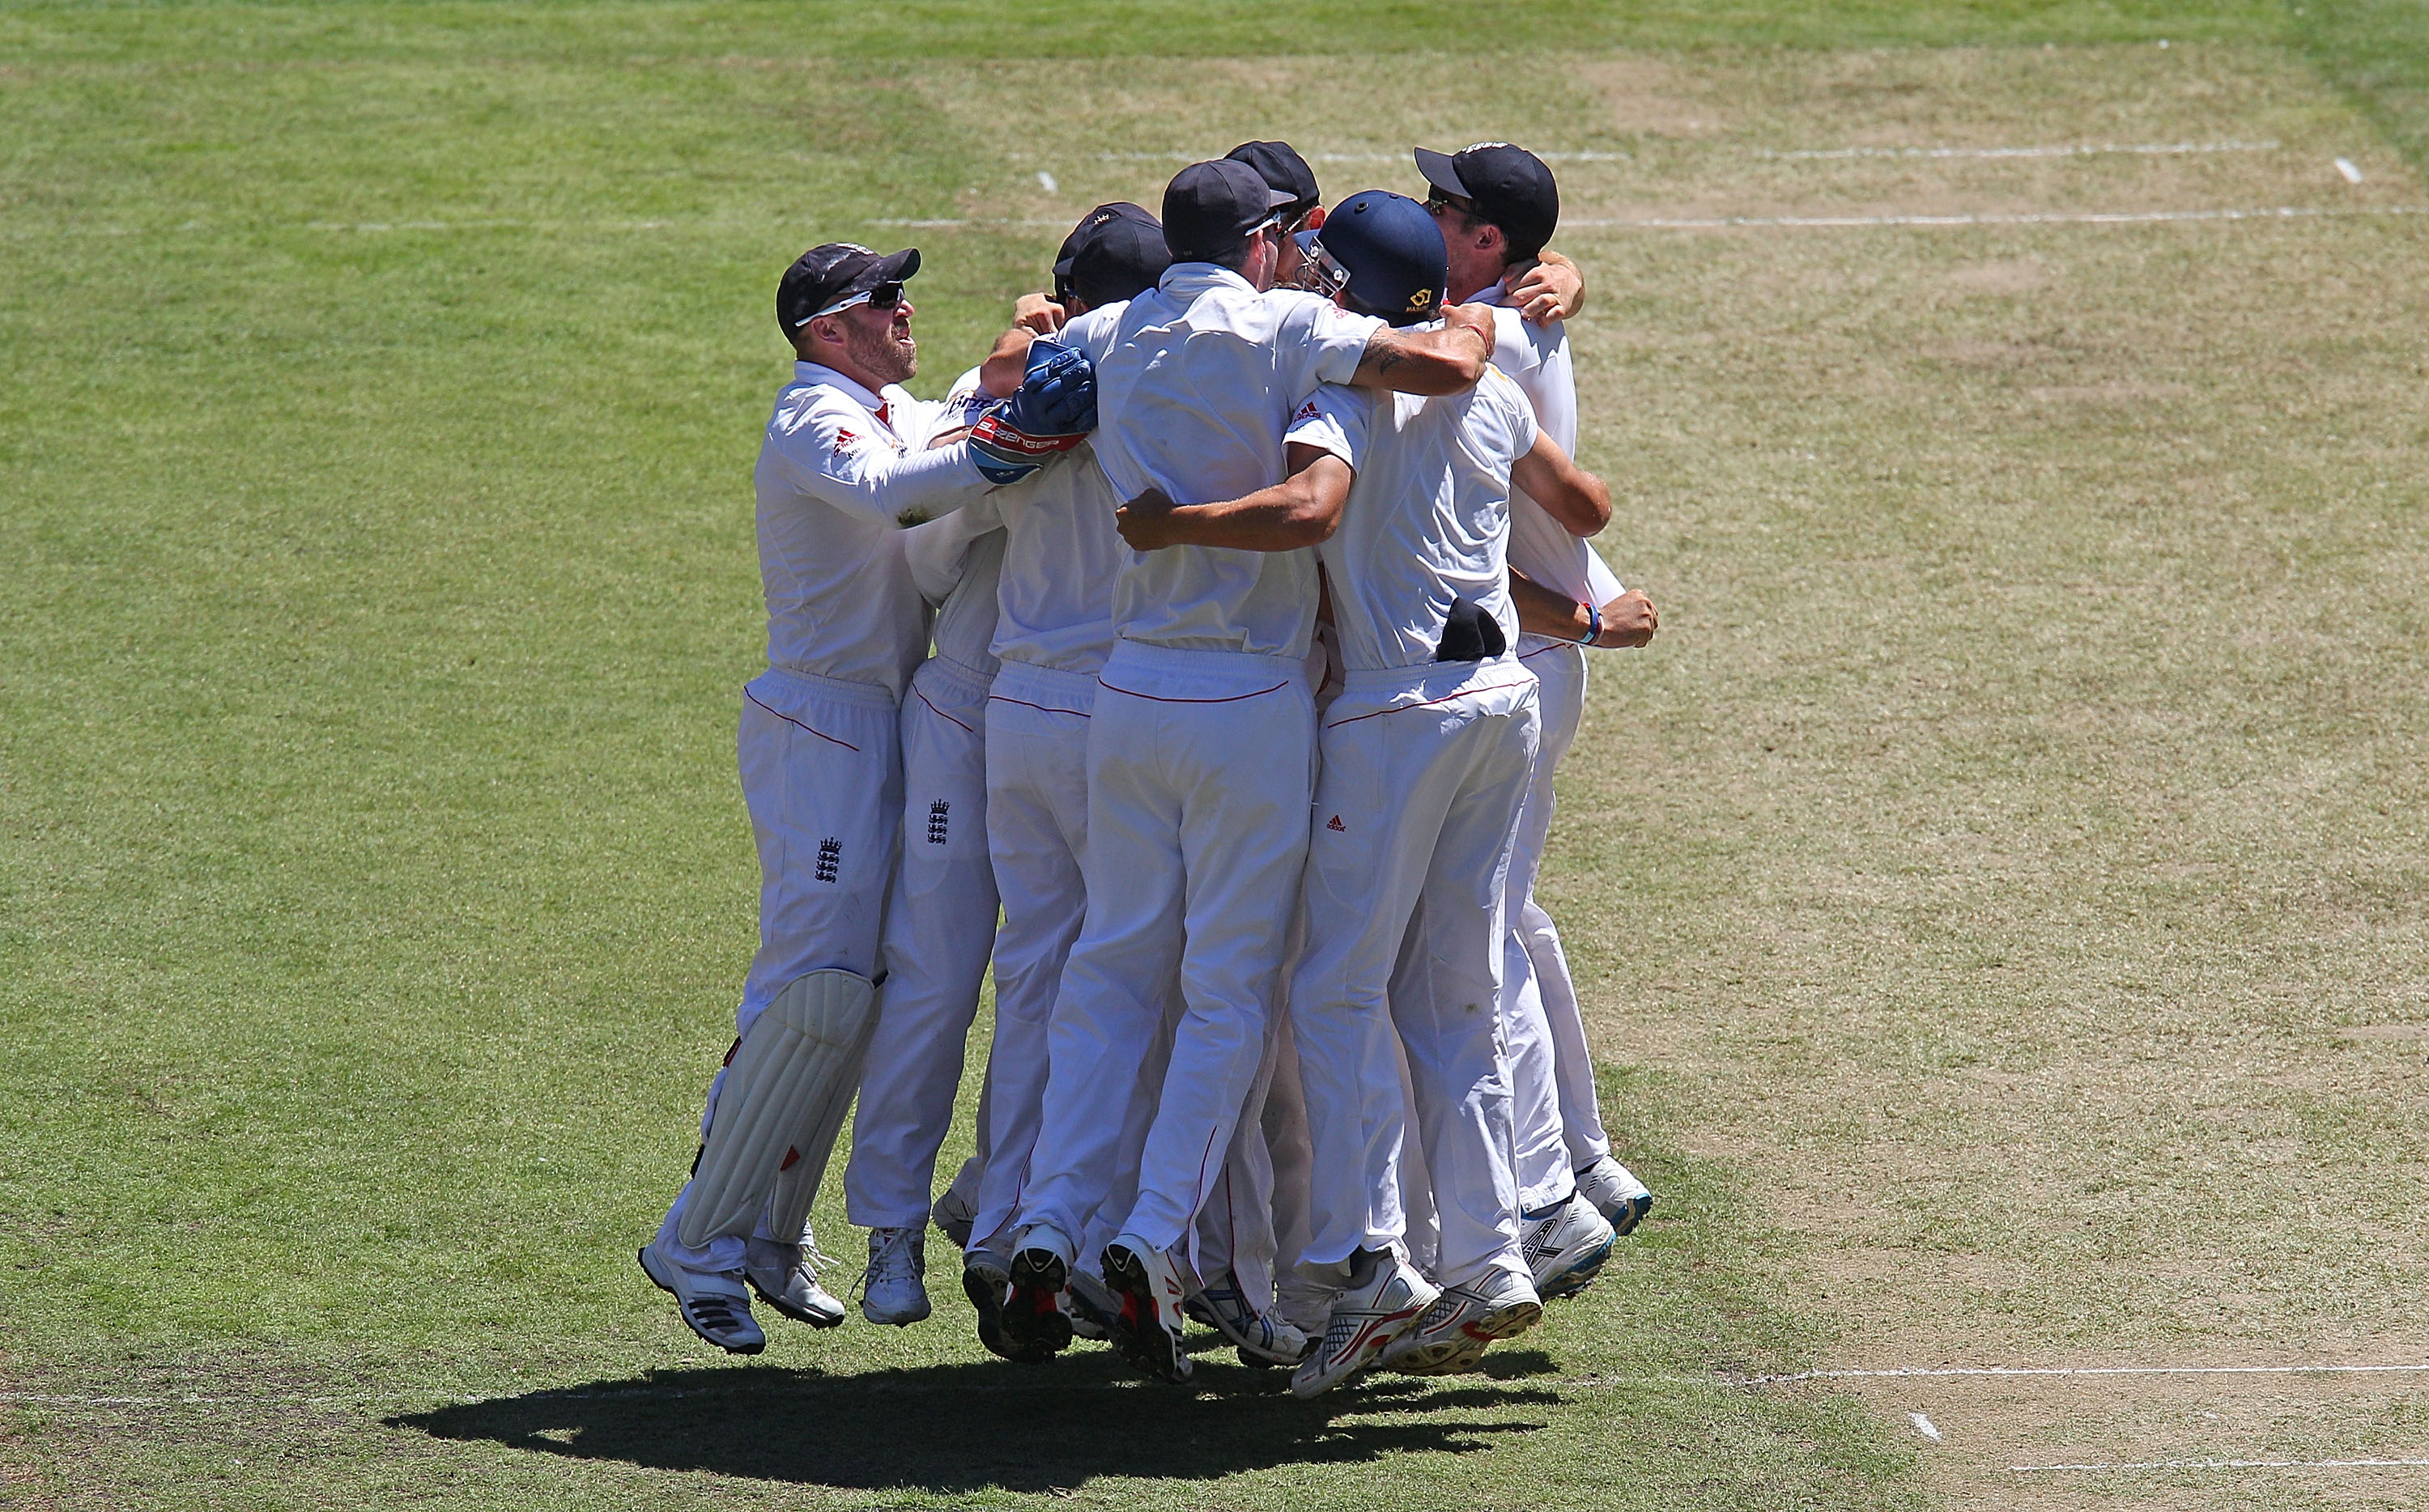 MELBOURNE, AUSTRALIA - DECEMBER 29:  England players celebrate after taking the last wicket to win the match during day four of the Fourth Test match between Australia and England at Melbourne Cricket Ground on December 29, 2010 in Melbourne, Australia.